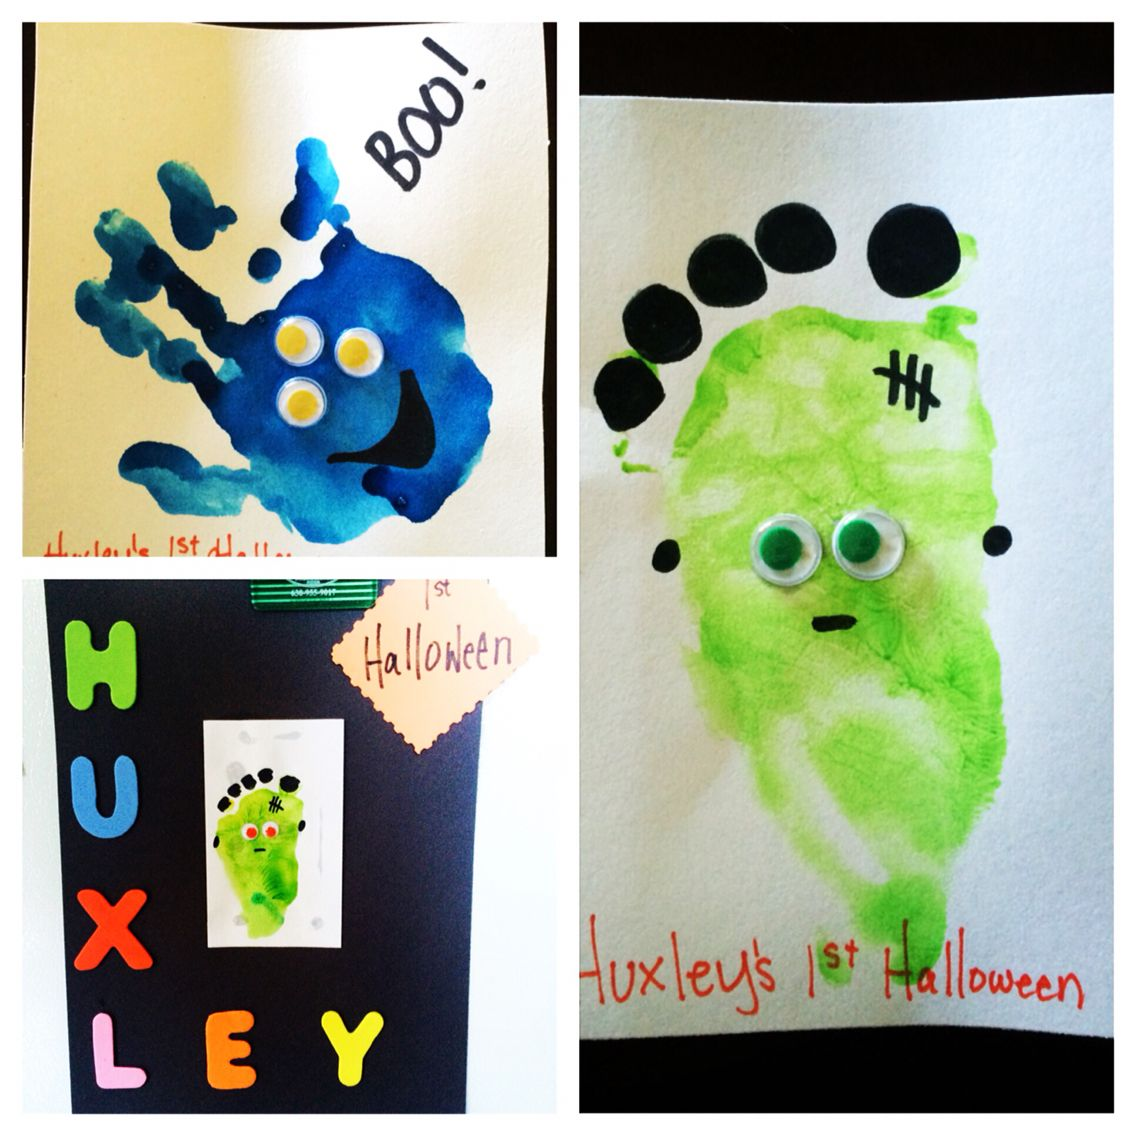 We did it! Baby first Halloween hand and foot print!